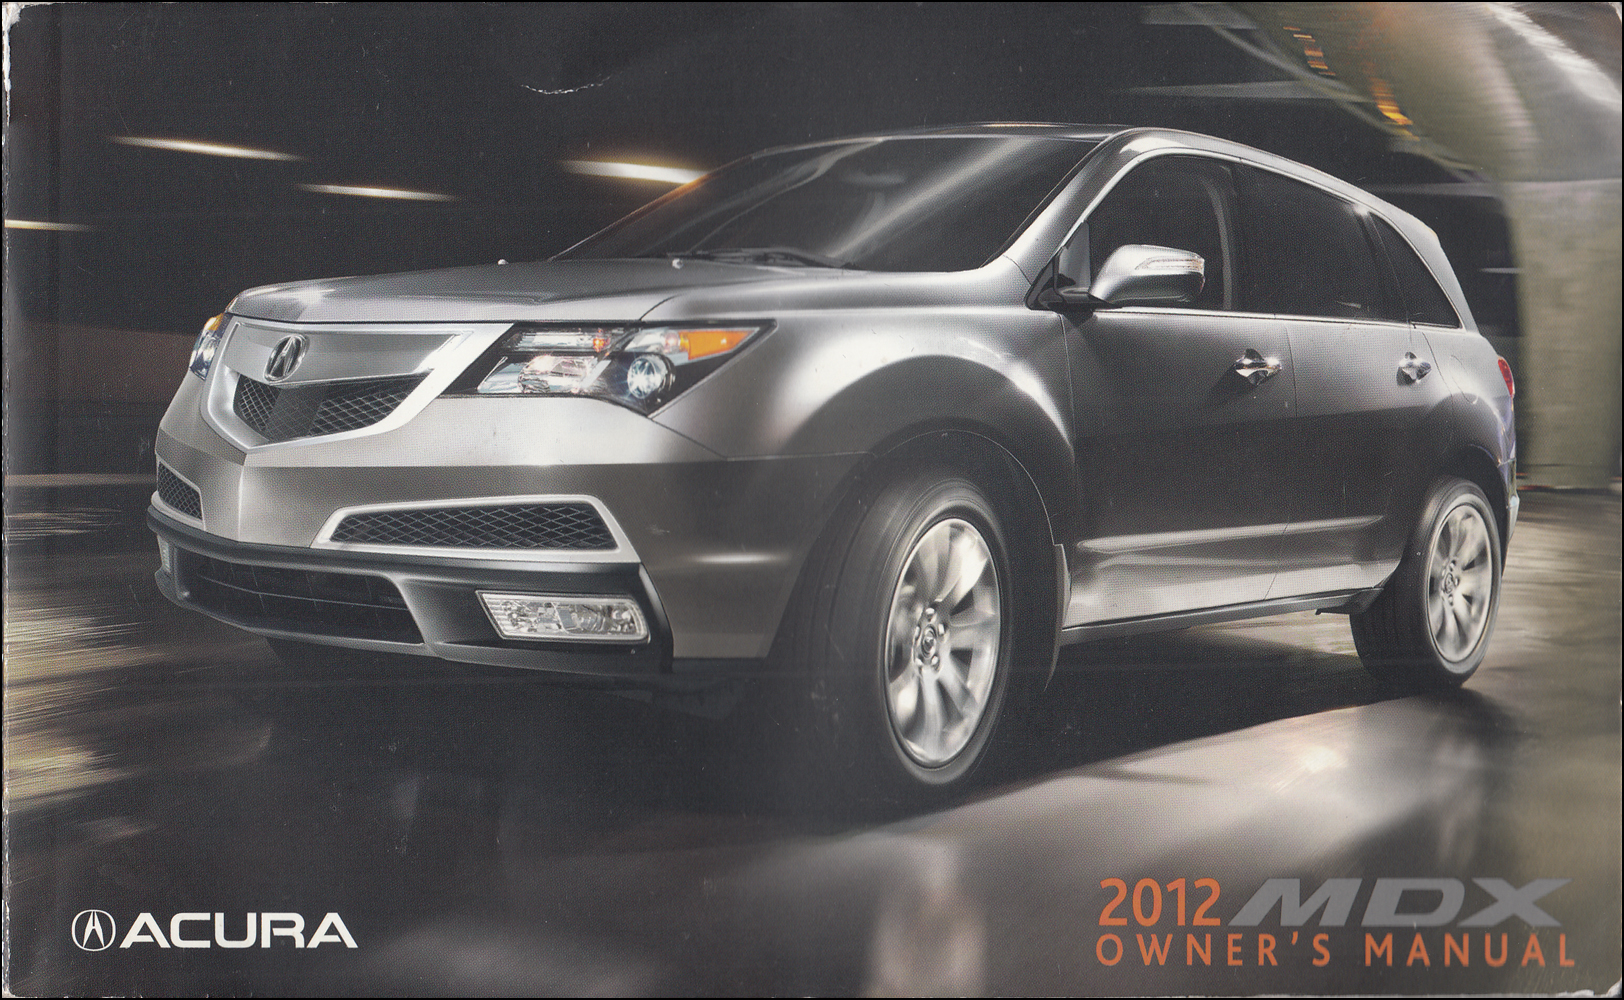 2012 Acura MDX Owner's Manual Original